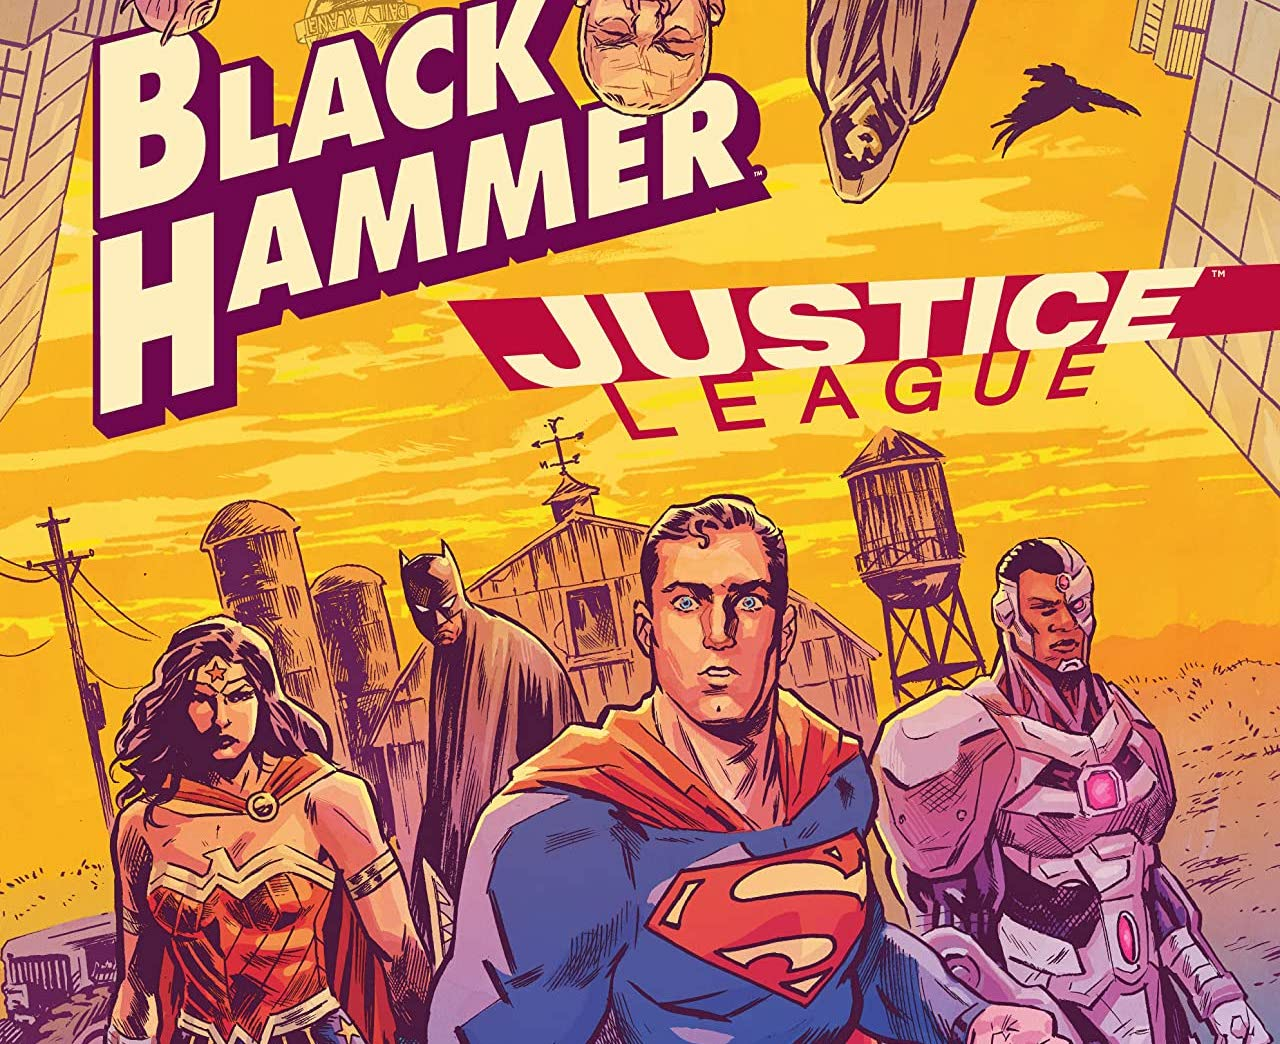 A good lead-in to the Black Hammer universe.